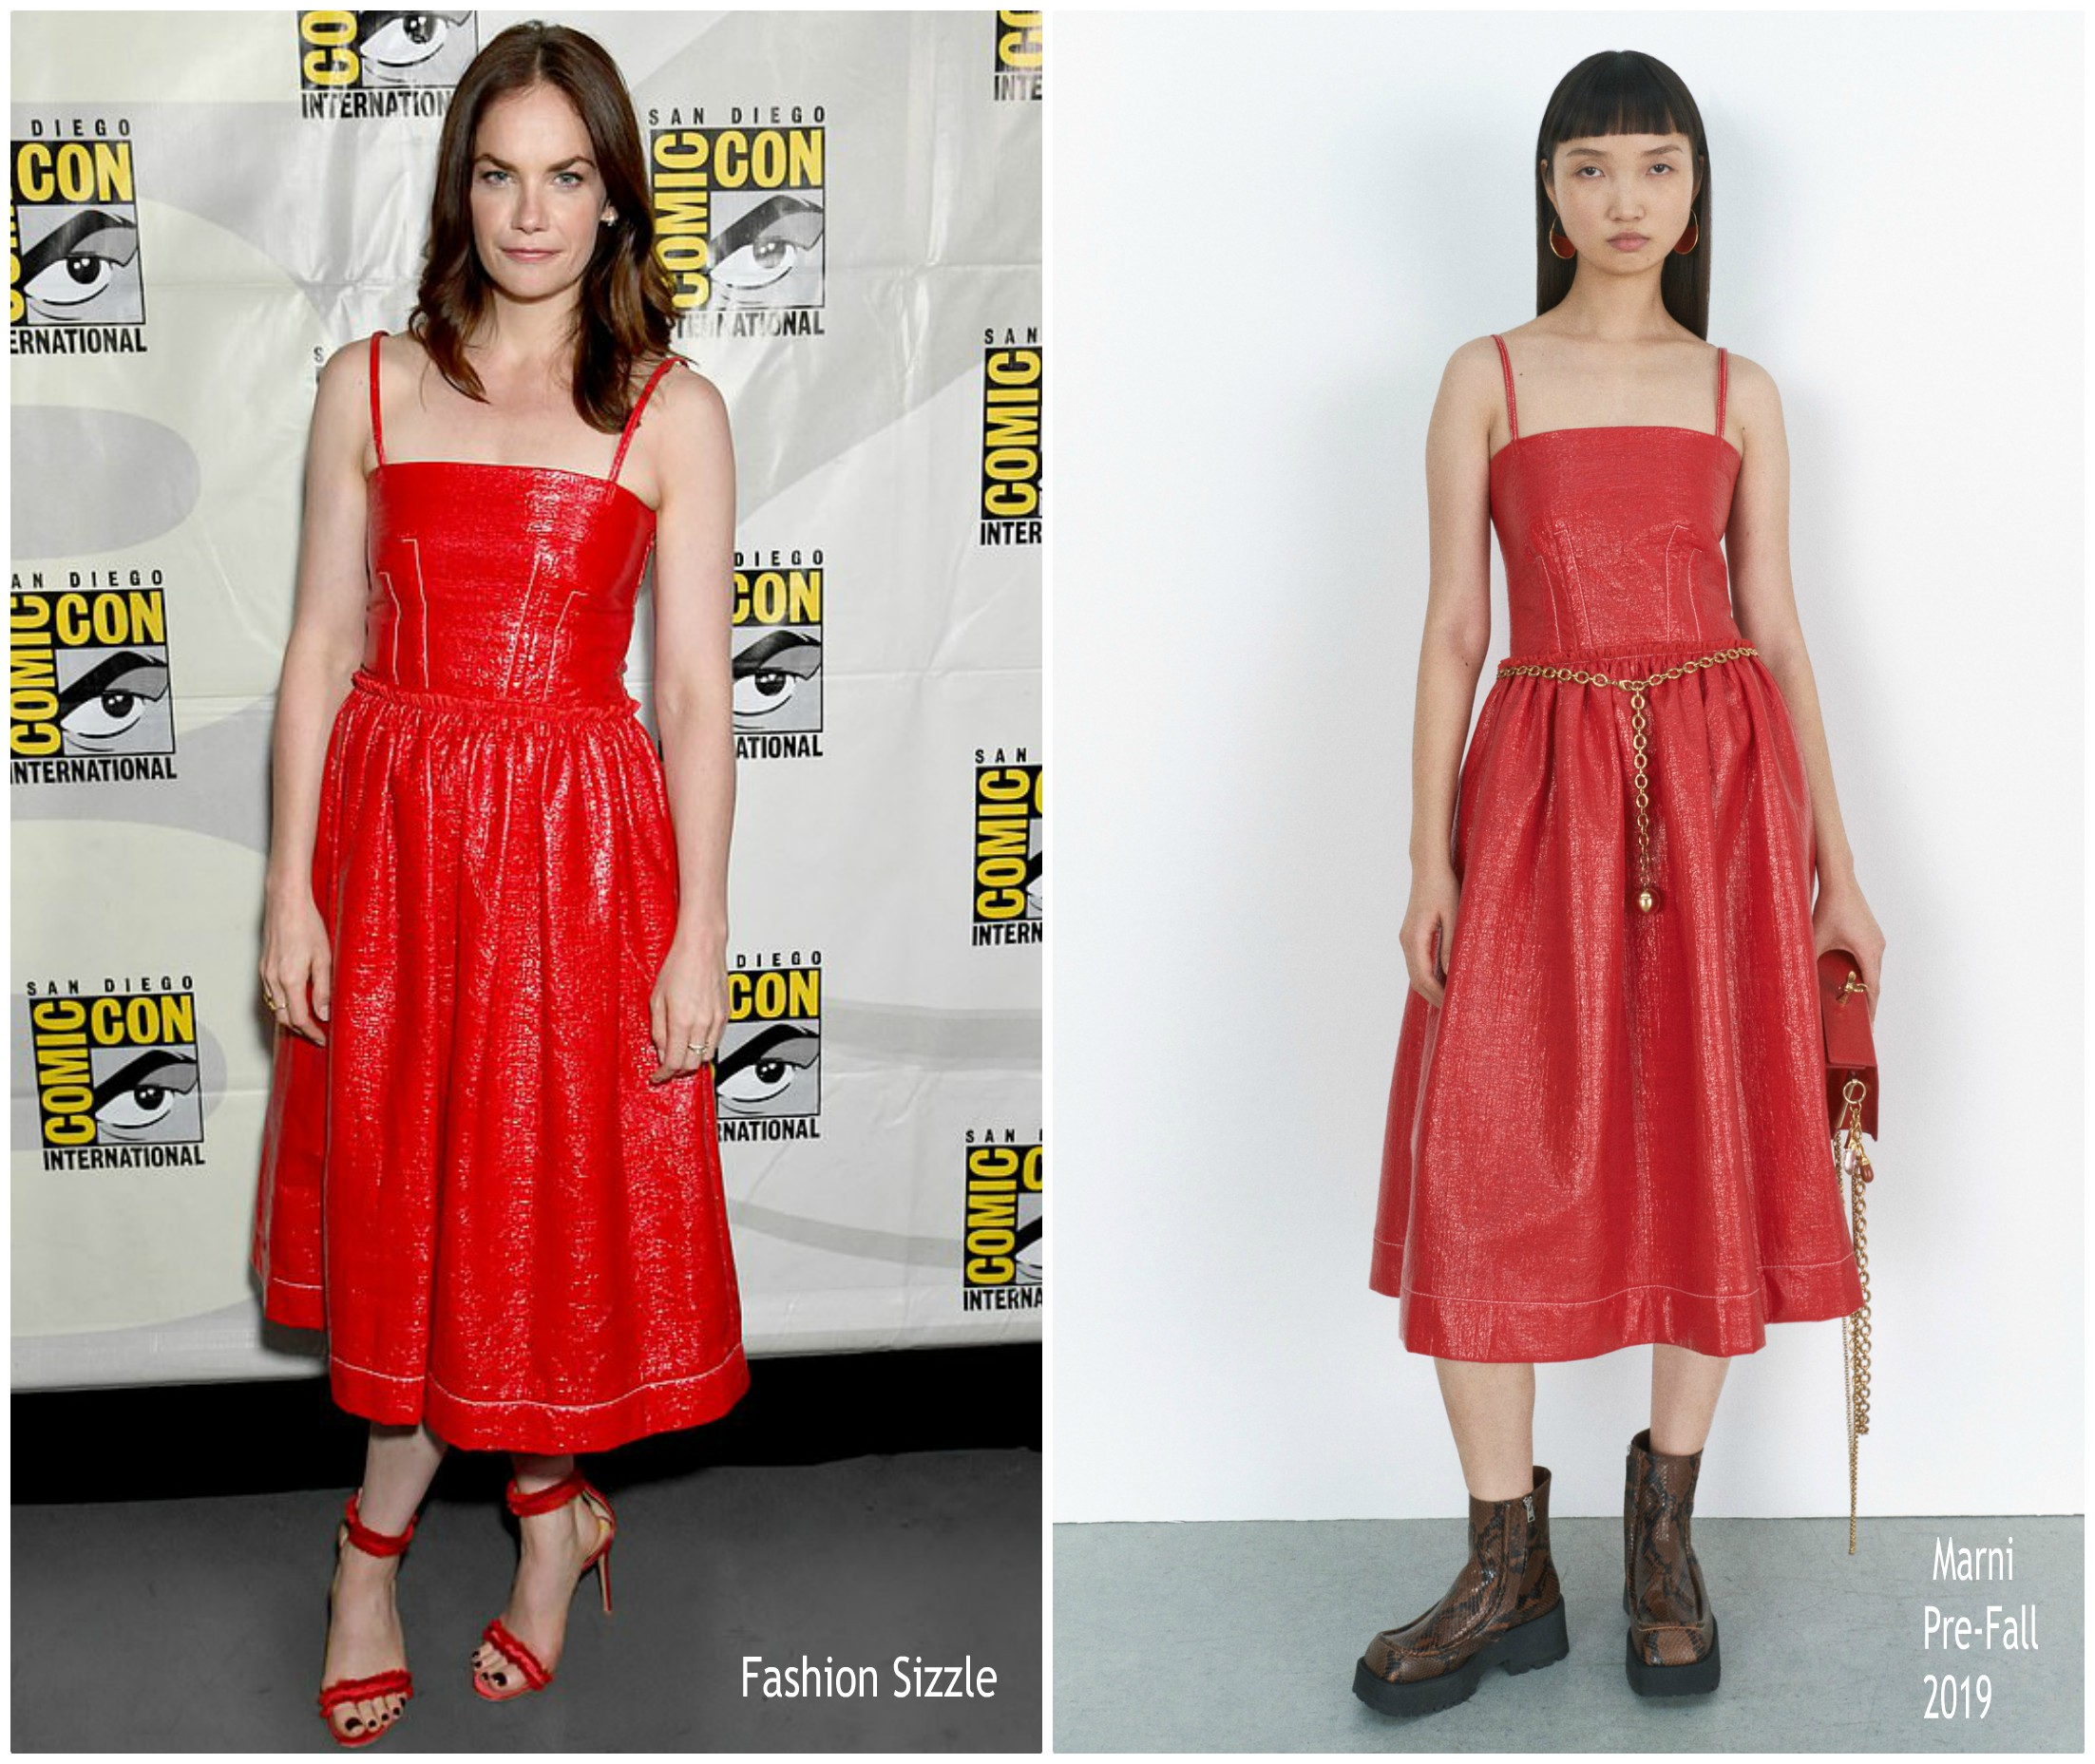 ruth-wilson-in-marni-comic-con-2019